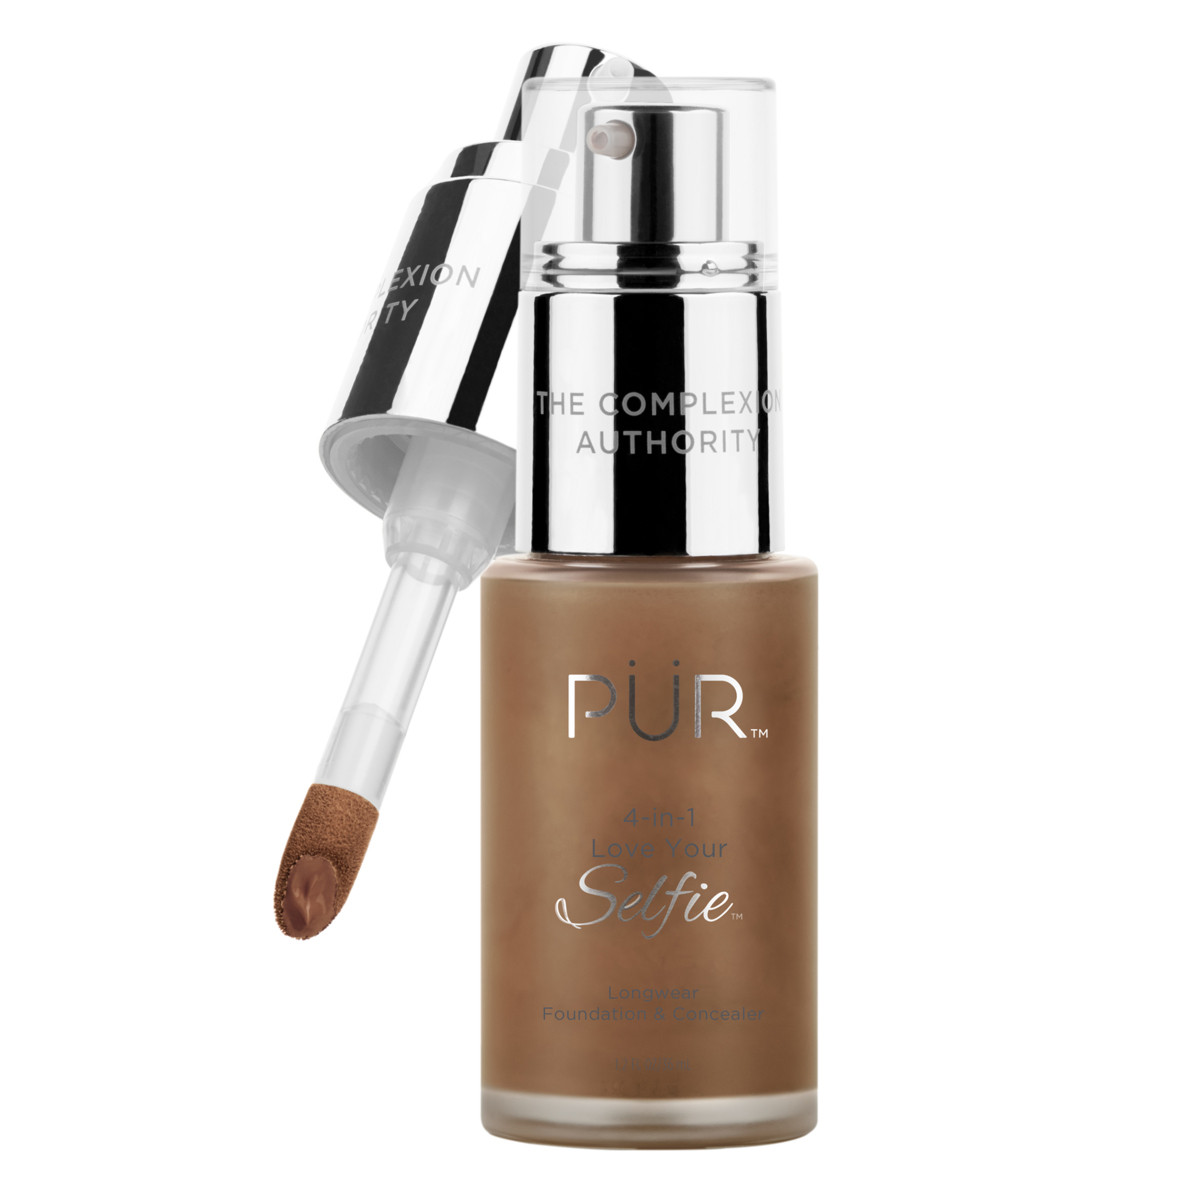 4-in-1 Love Your Selfie™ Longwear Foundation & Concealer in DPG1